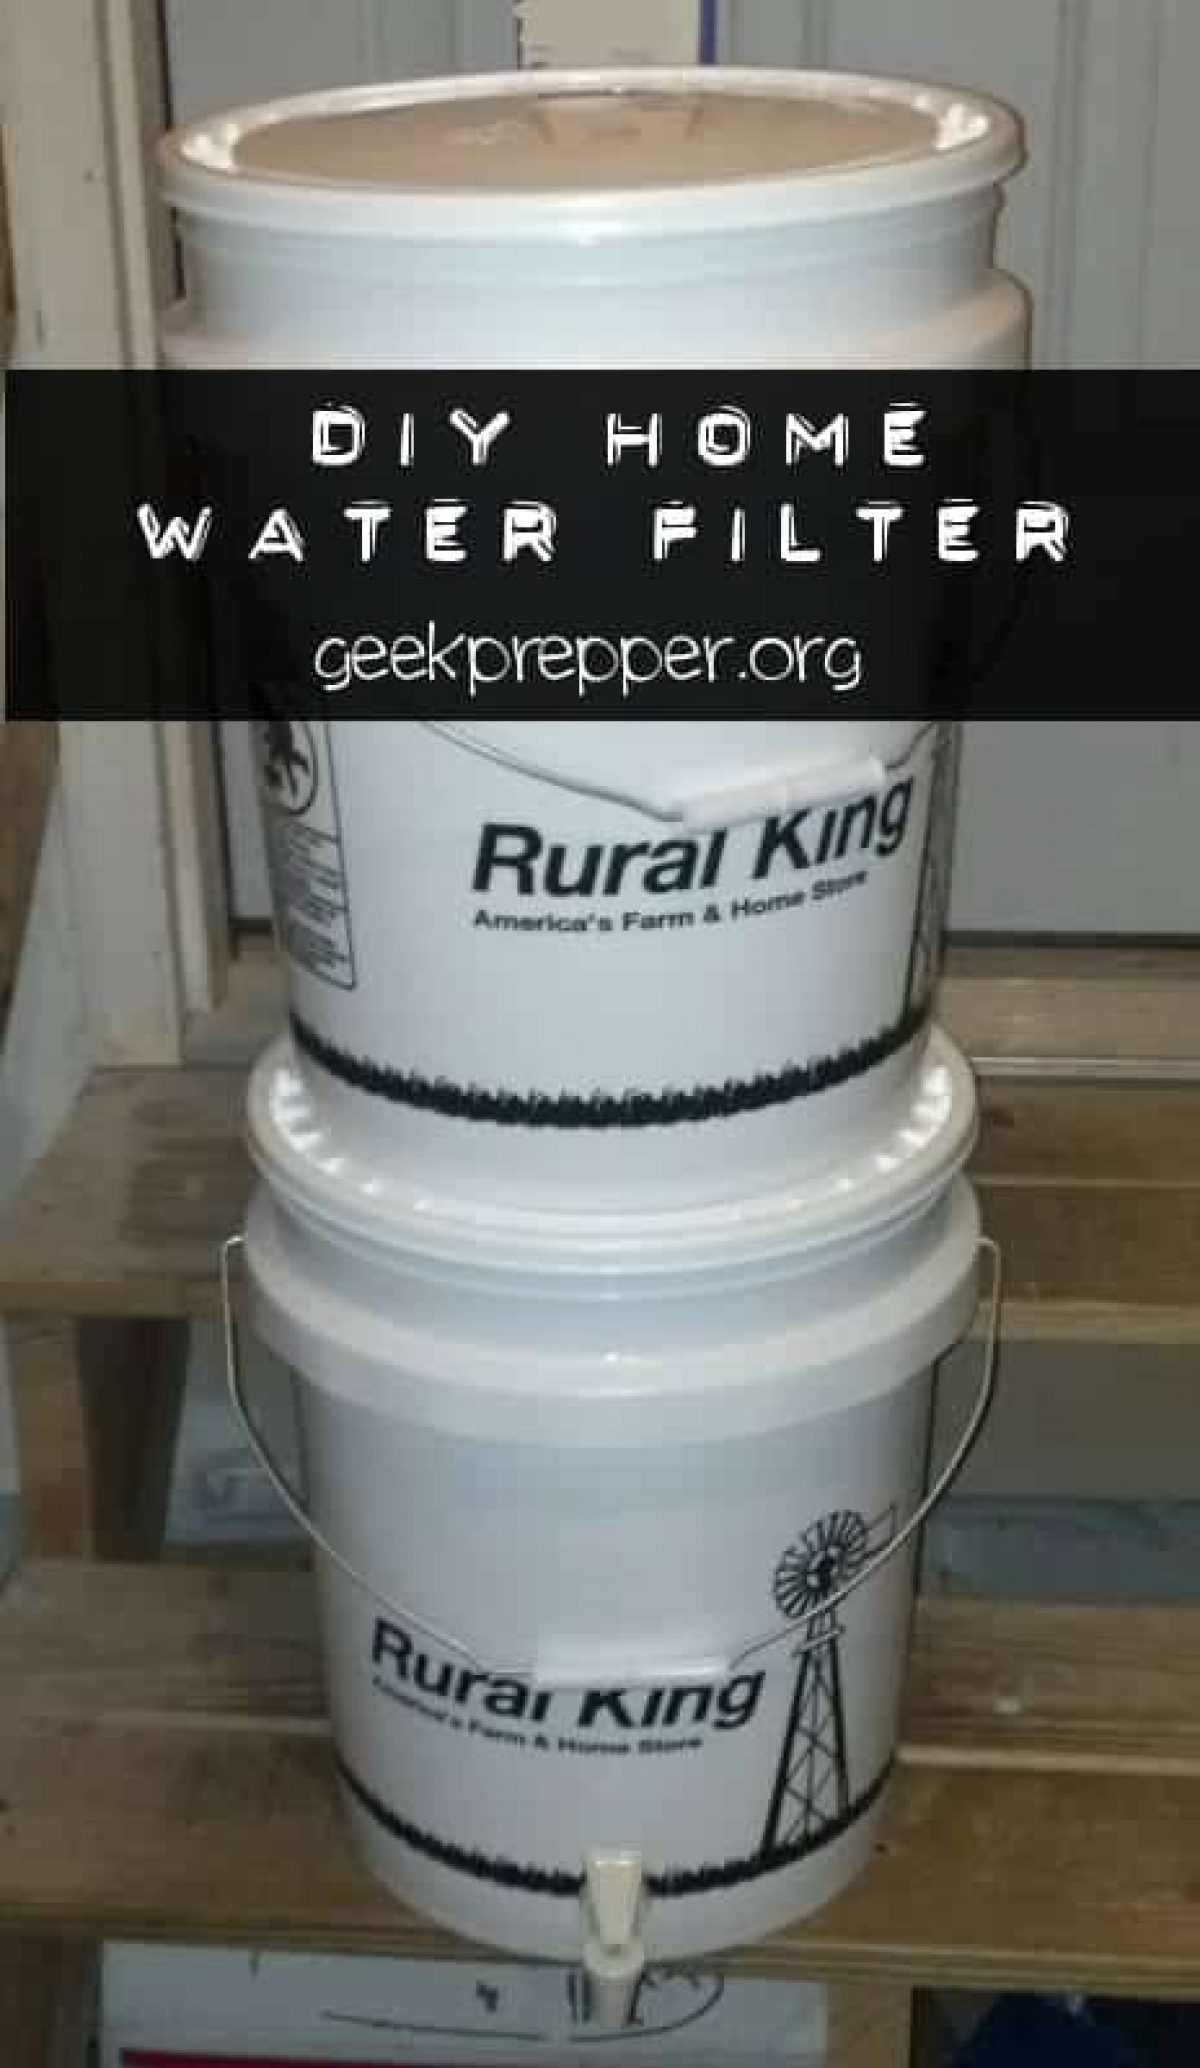 How to DIY a Home Water Filter System w